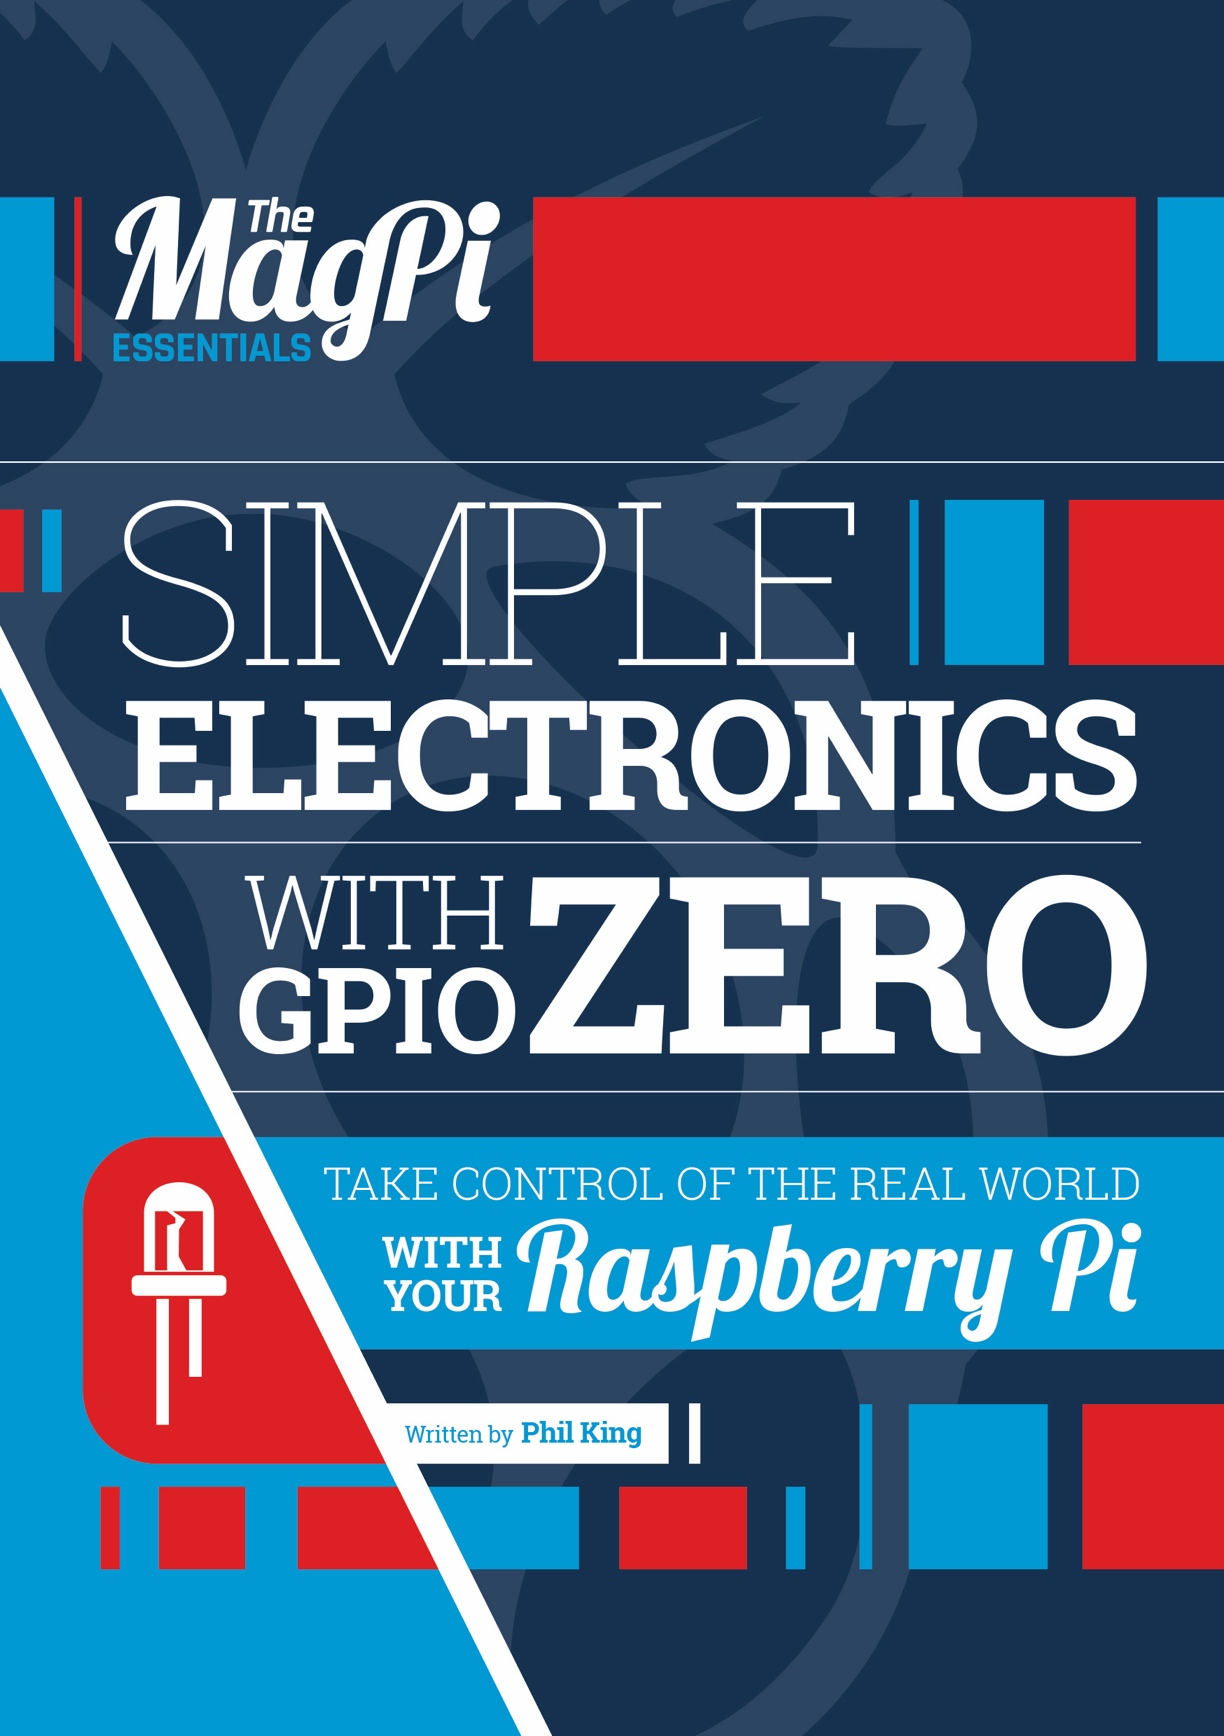 Essentials-07-GPIO-ZERO_Flat_Cover.jpg